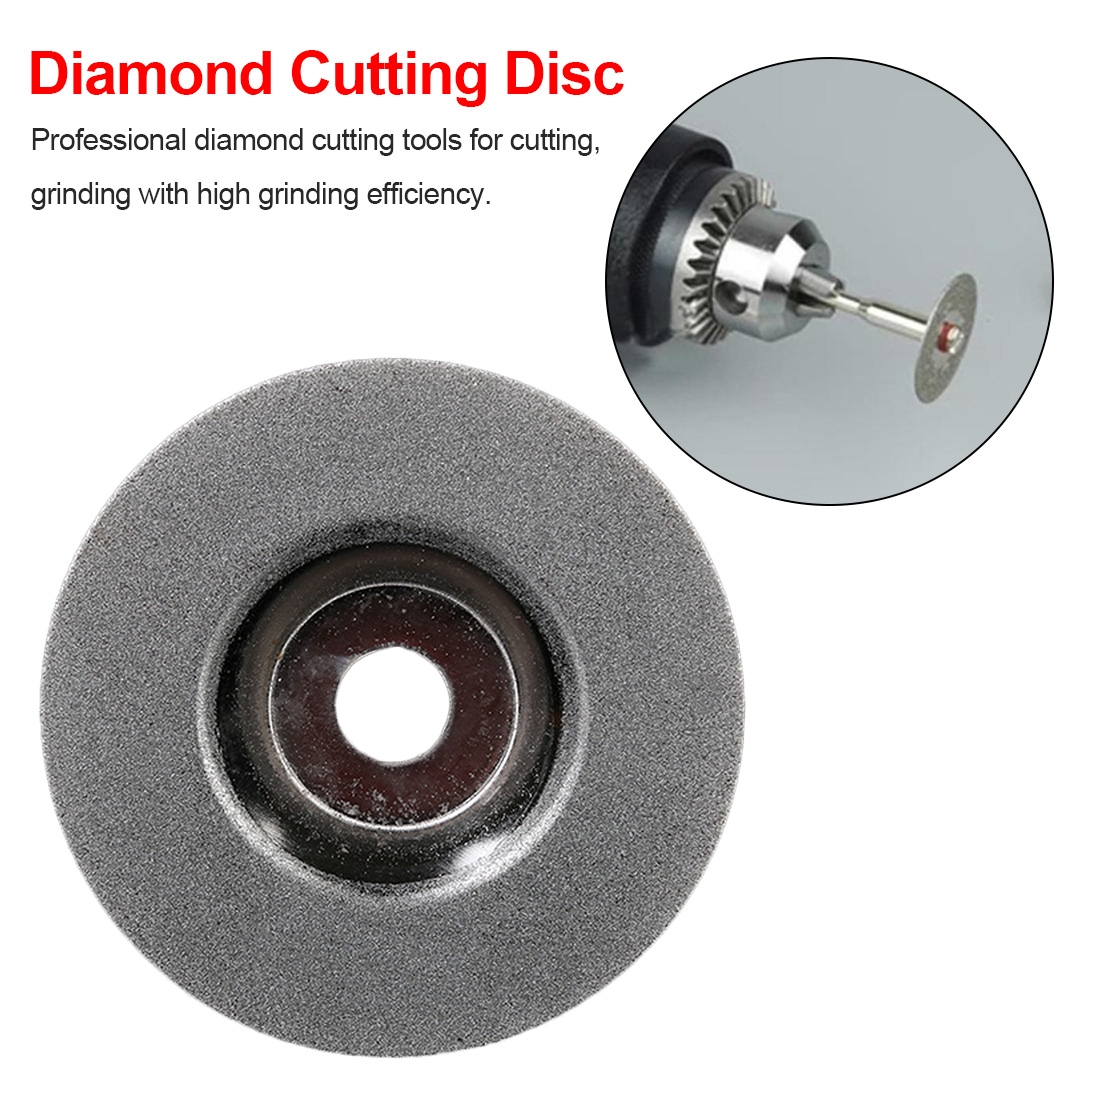 4 Inch Grinding Cutting Disc Diamond Circle Accessories Saw Blade Rotary Wheel For Angle Grinder Abrasive Tools